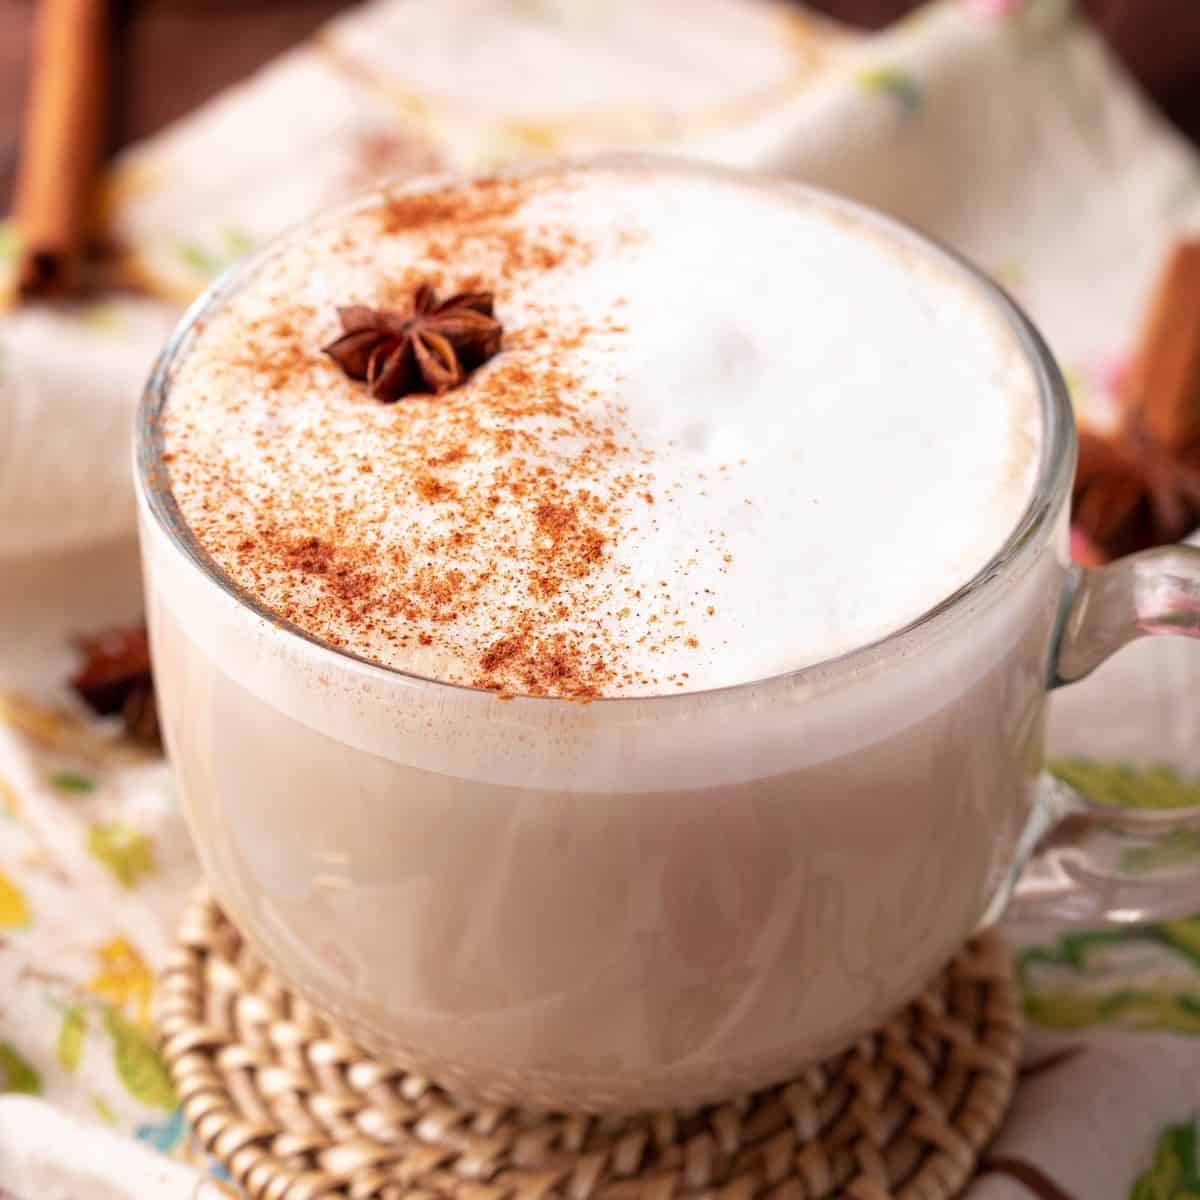 Square image of Chai Latte in mug with cinnamon and a star of anise.